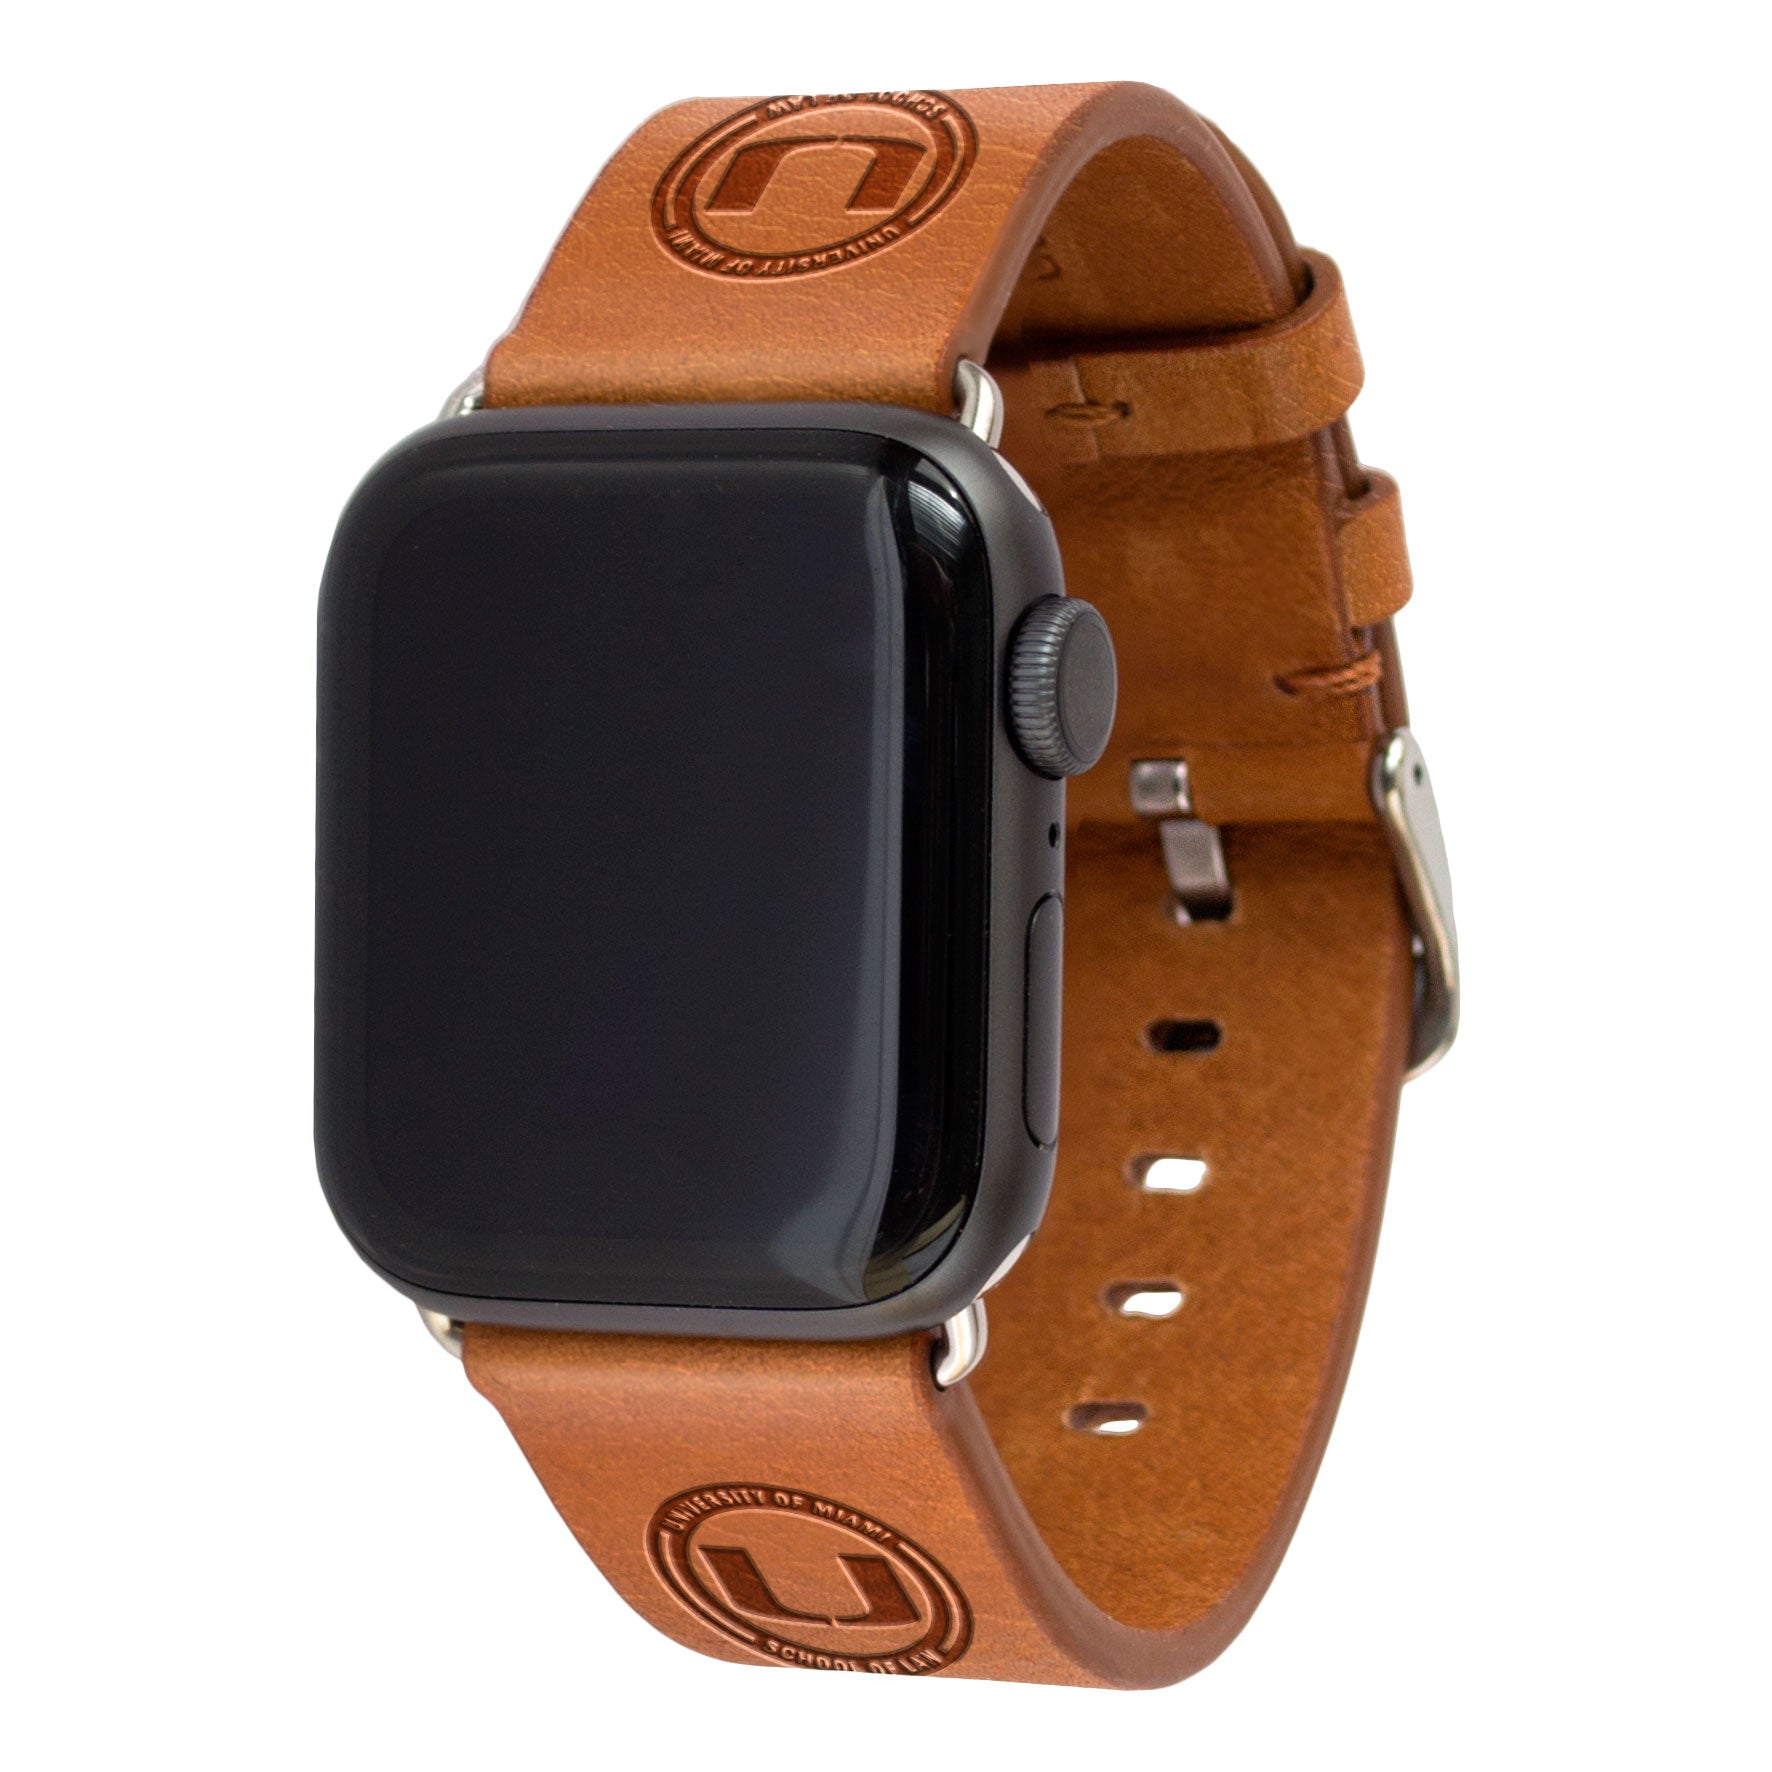 University of Miami School of Law Leather Apple Watch Band